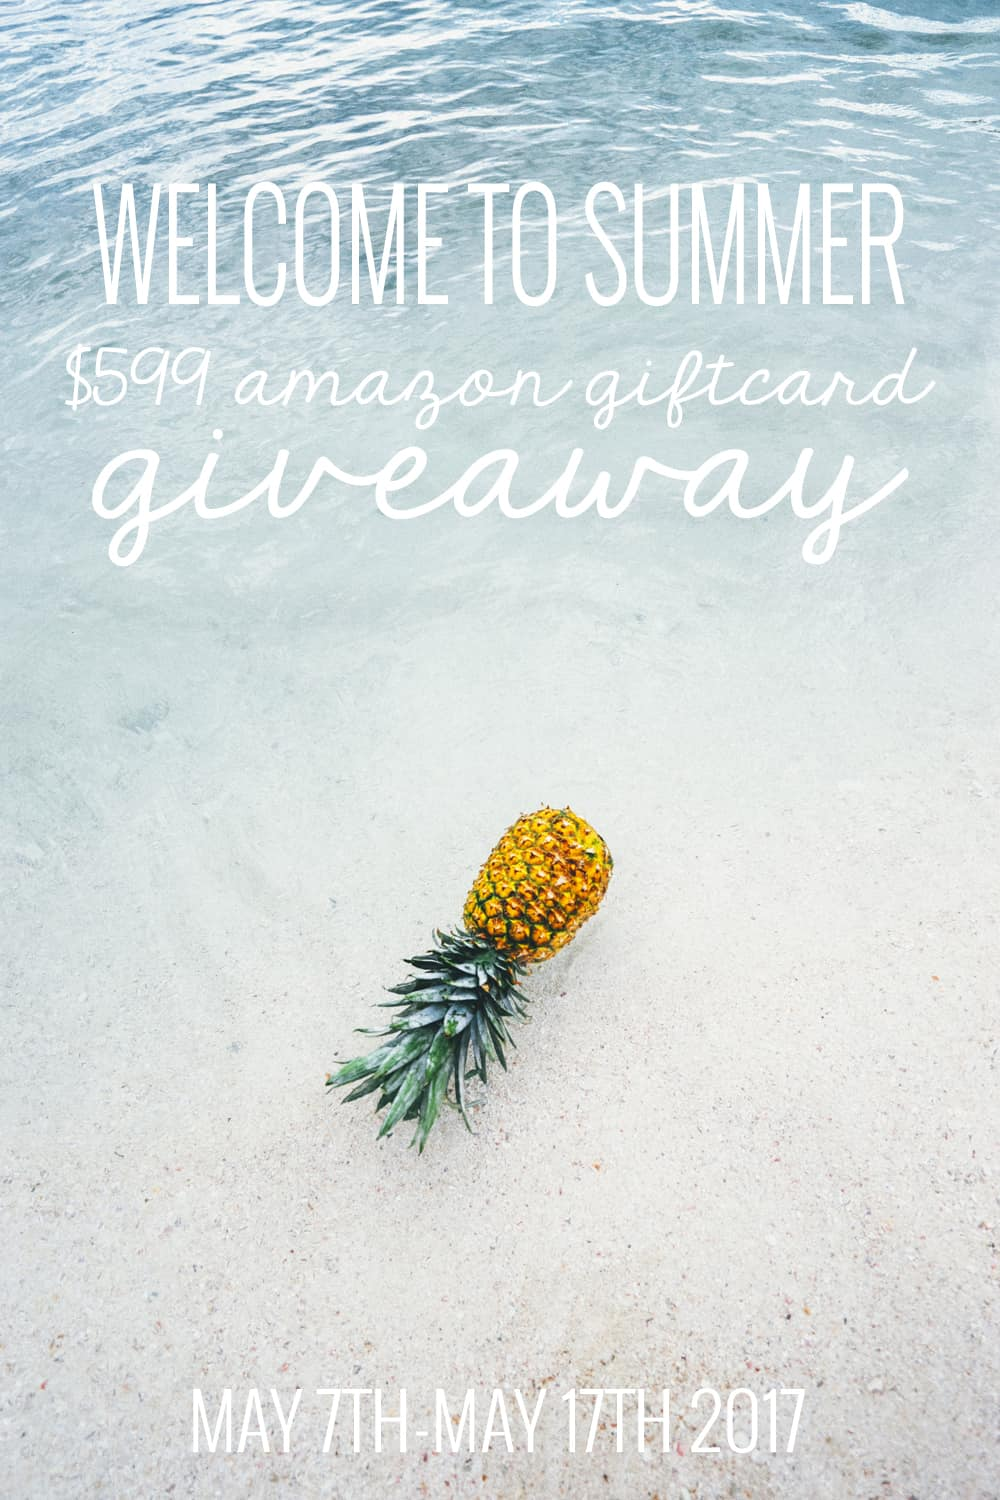 Enter to win $599 Amazon Giftcard in our BIG GIVEAWAY! Perfect to celebrate summer with!